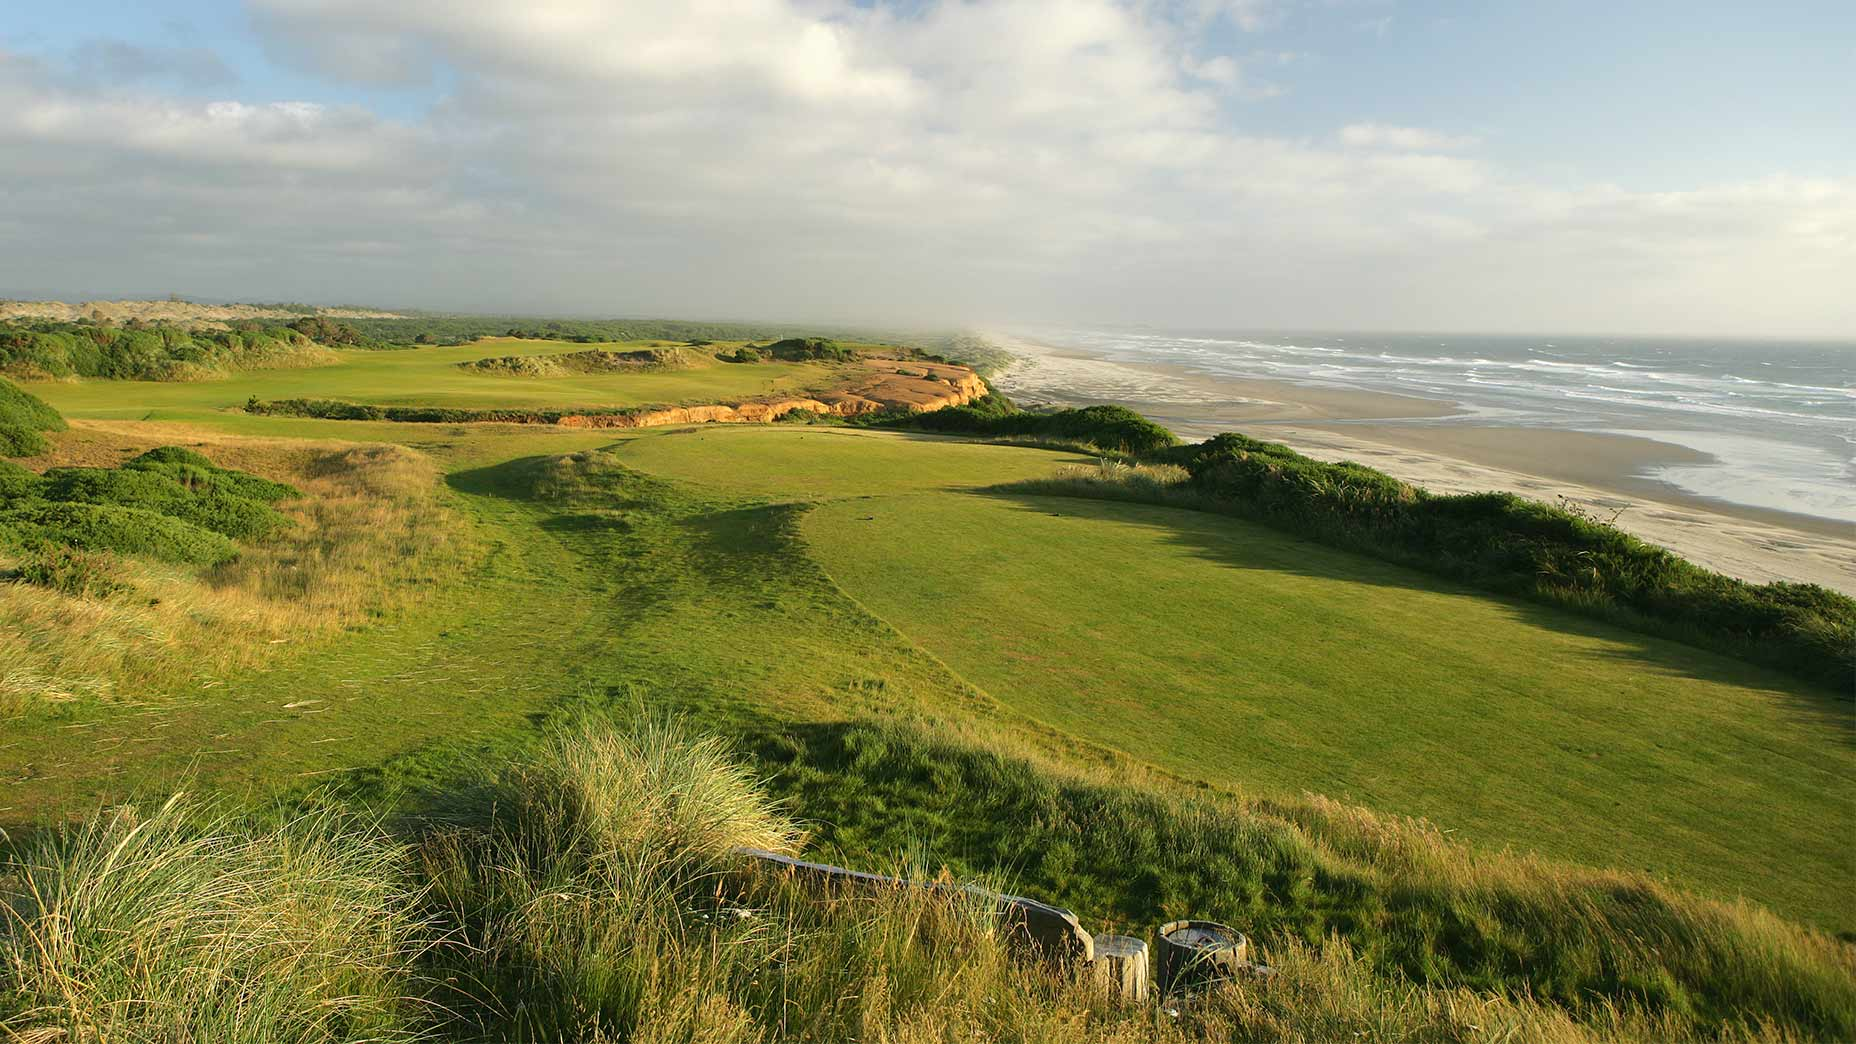 The par-4 16th at Bandon Dunes.